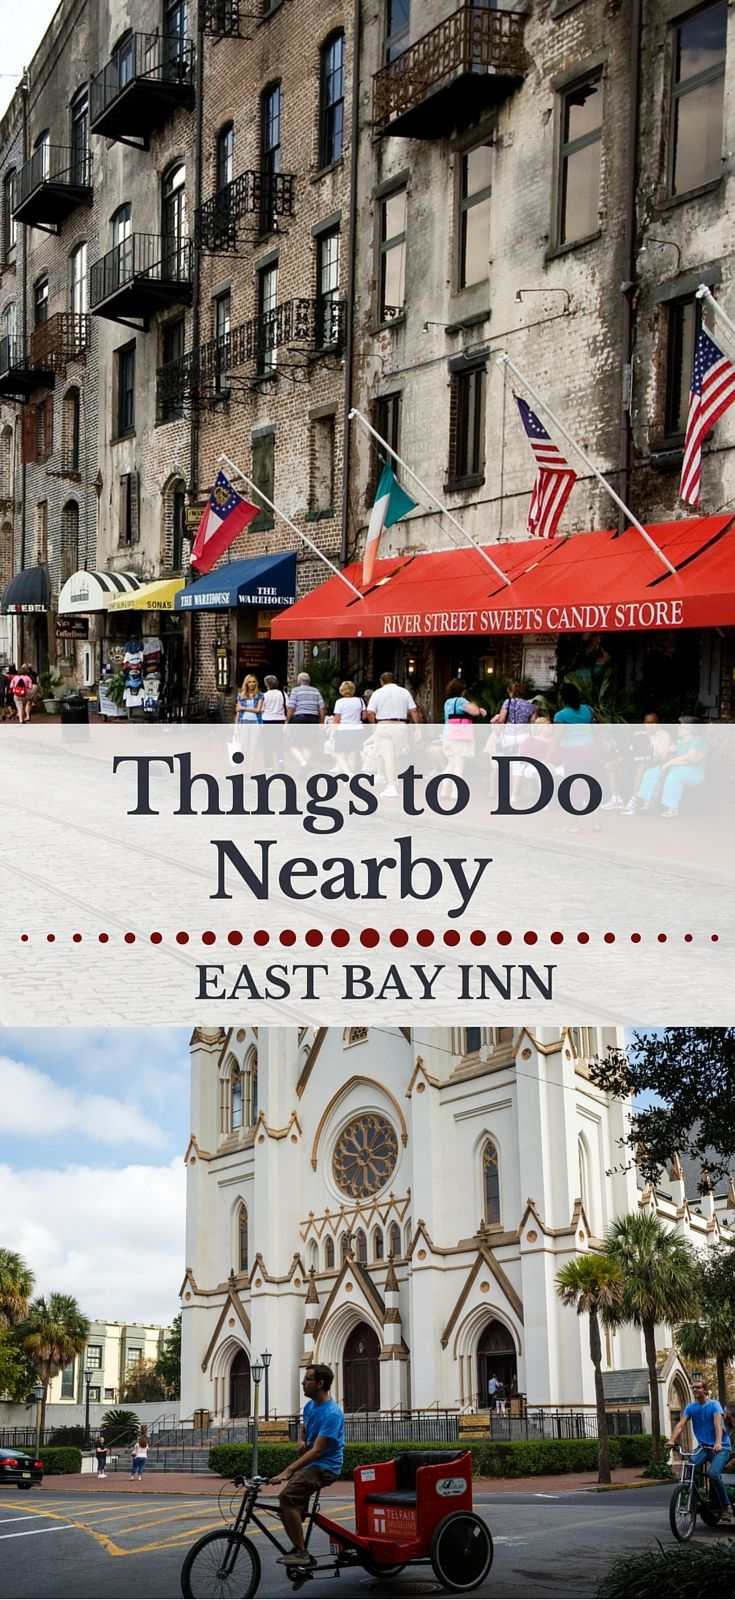 East Bay Inn is just across the street from Savannah's famous River Street.  It's situated perfectly for lots of fun.  Check out our summary here of what our guests enjoy most. http://www.eastbayinn.com/area-guide.htm